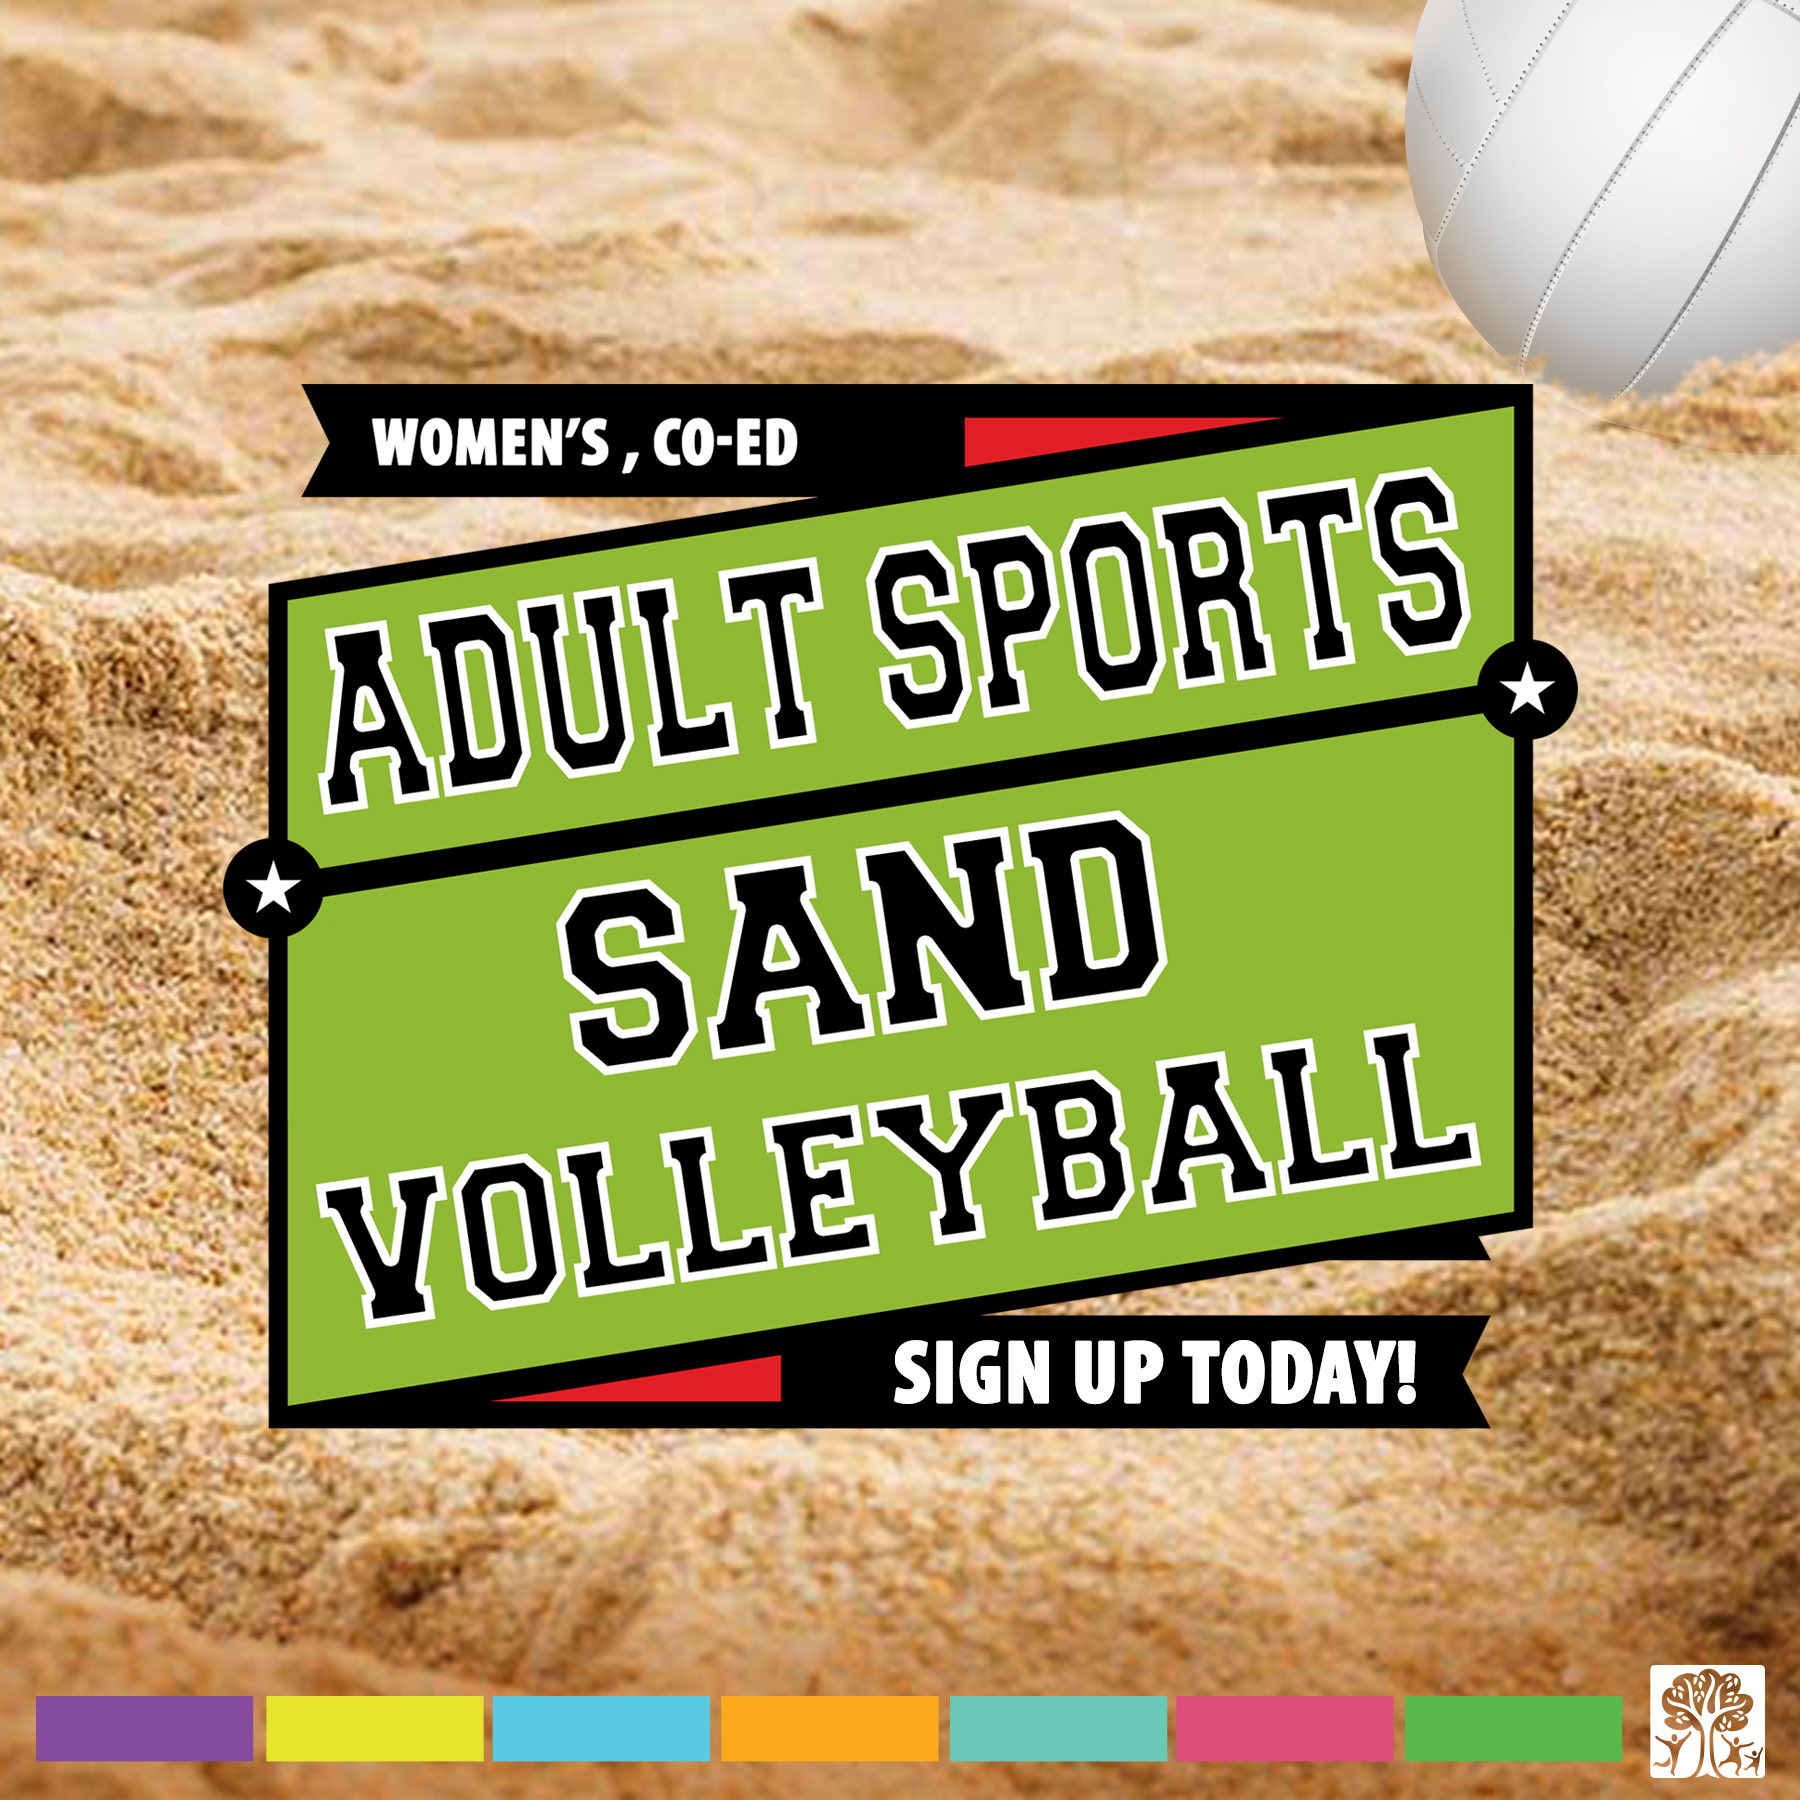 Indoor and sand volleyball leagues available.